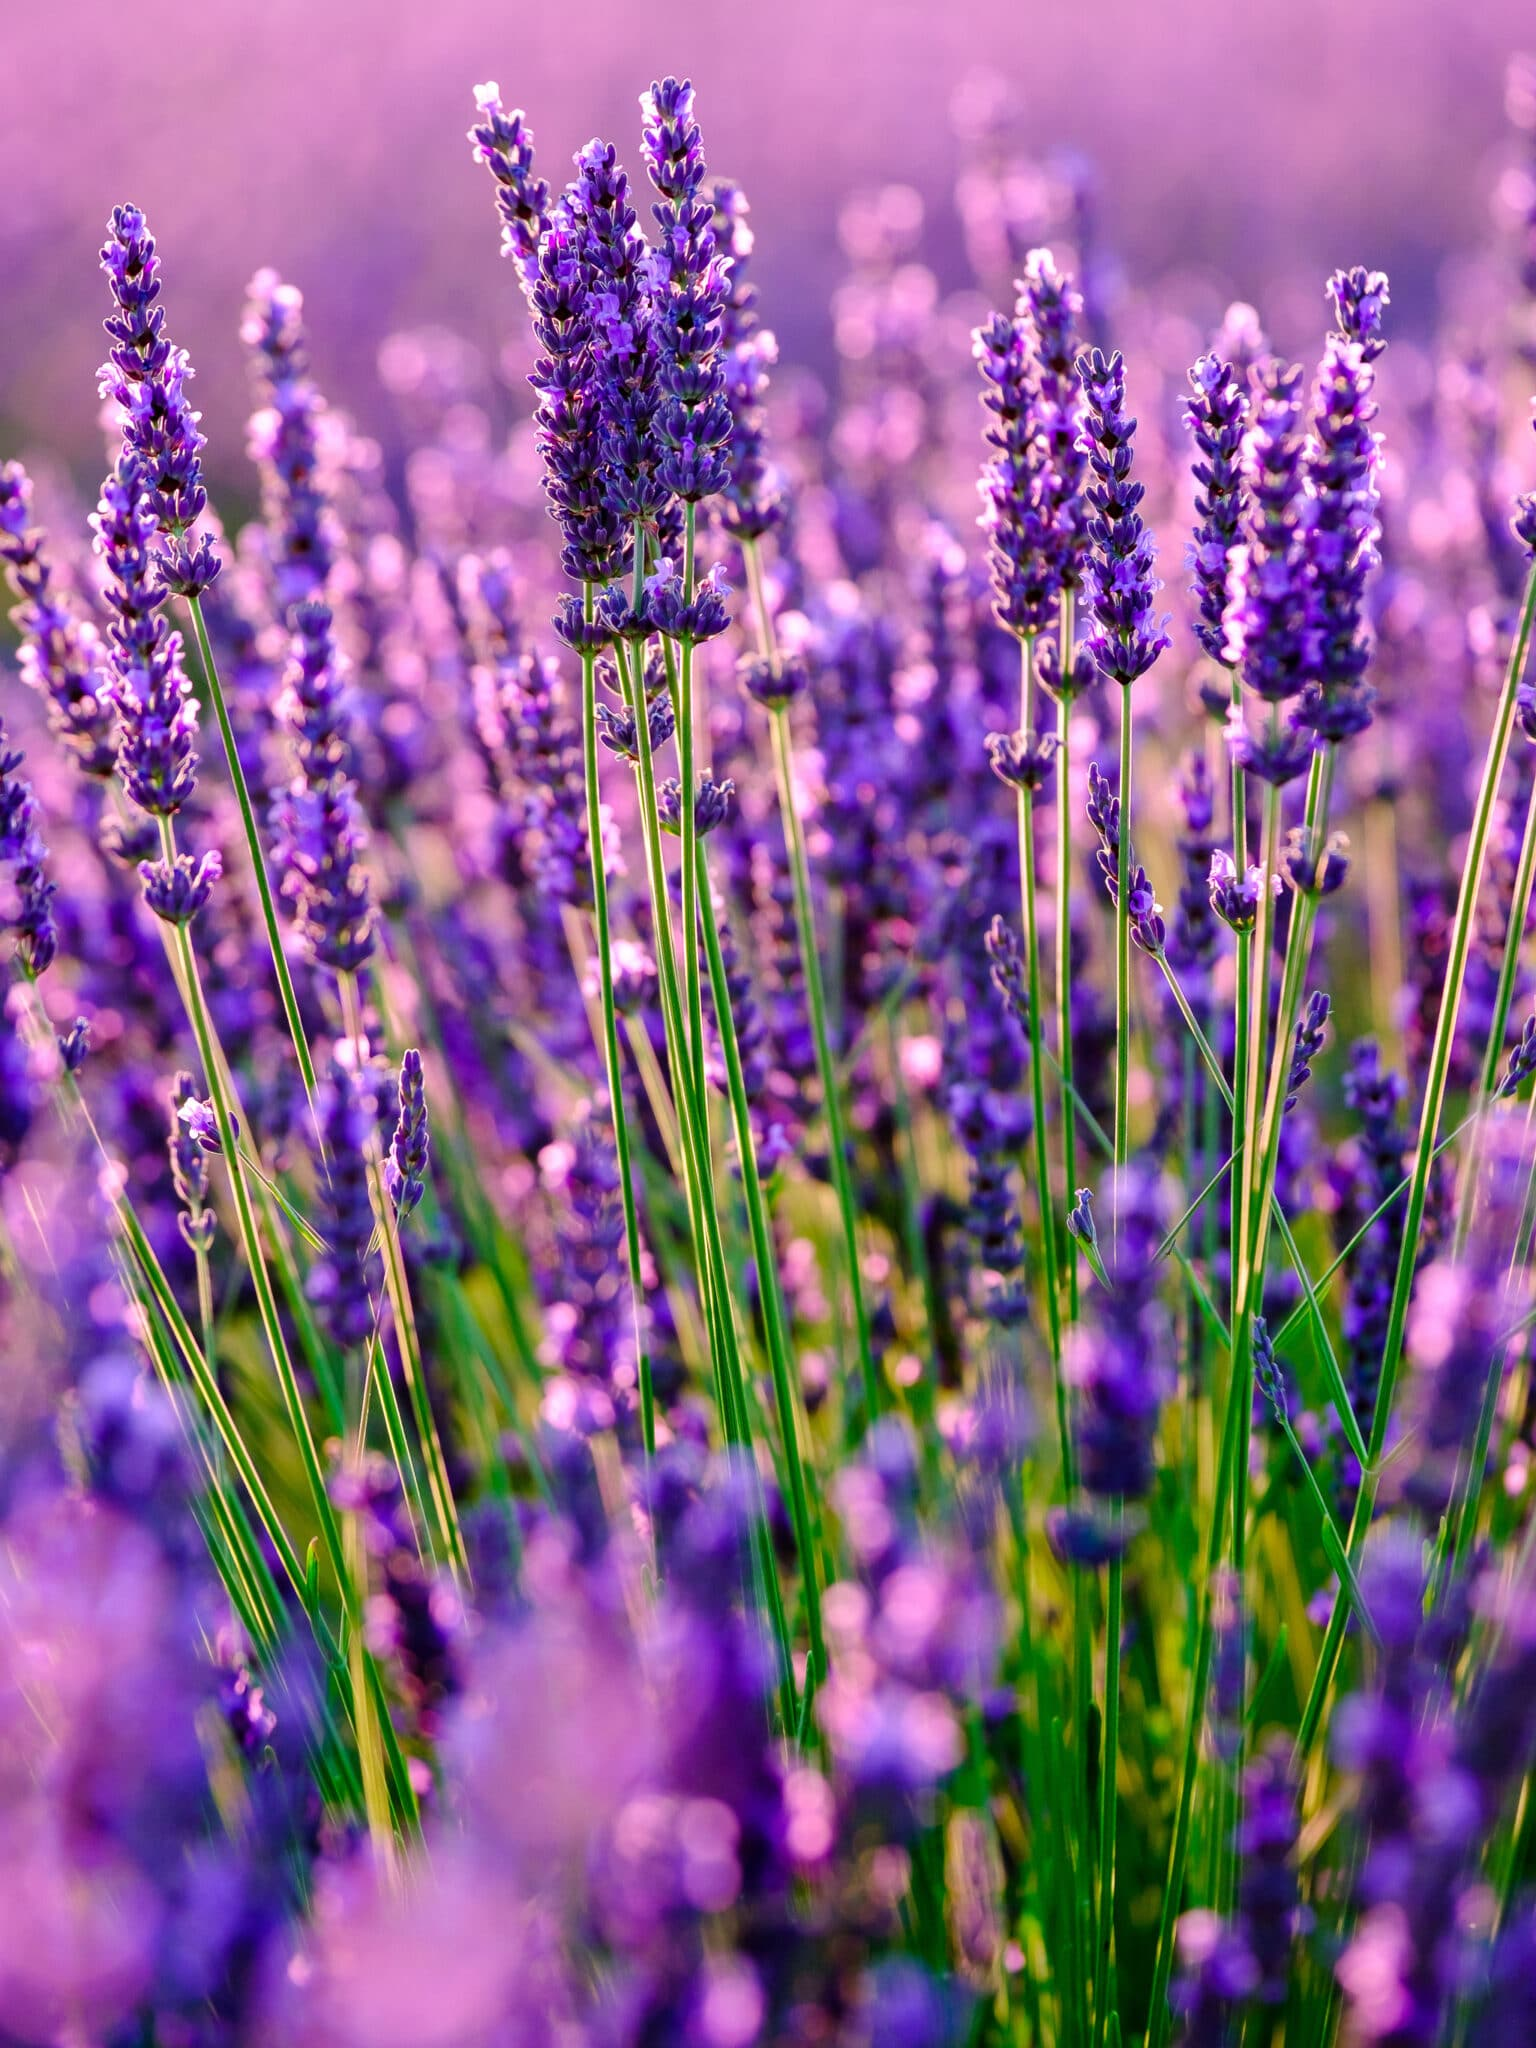 Lavender growing in a field. Lavender is a great early-starter for spring gardening.